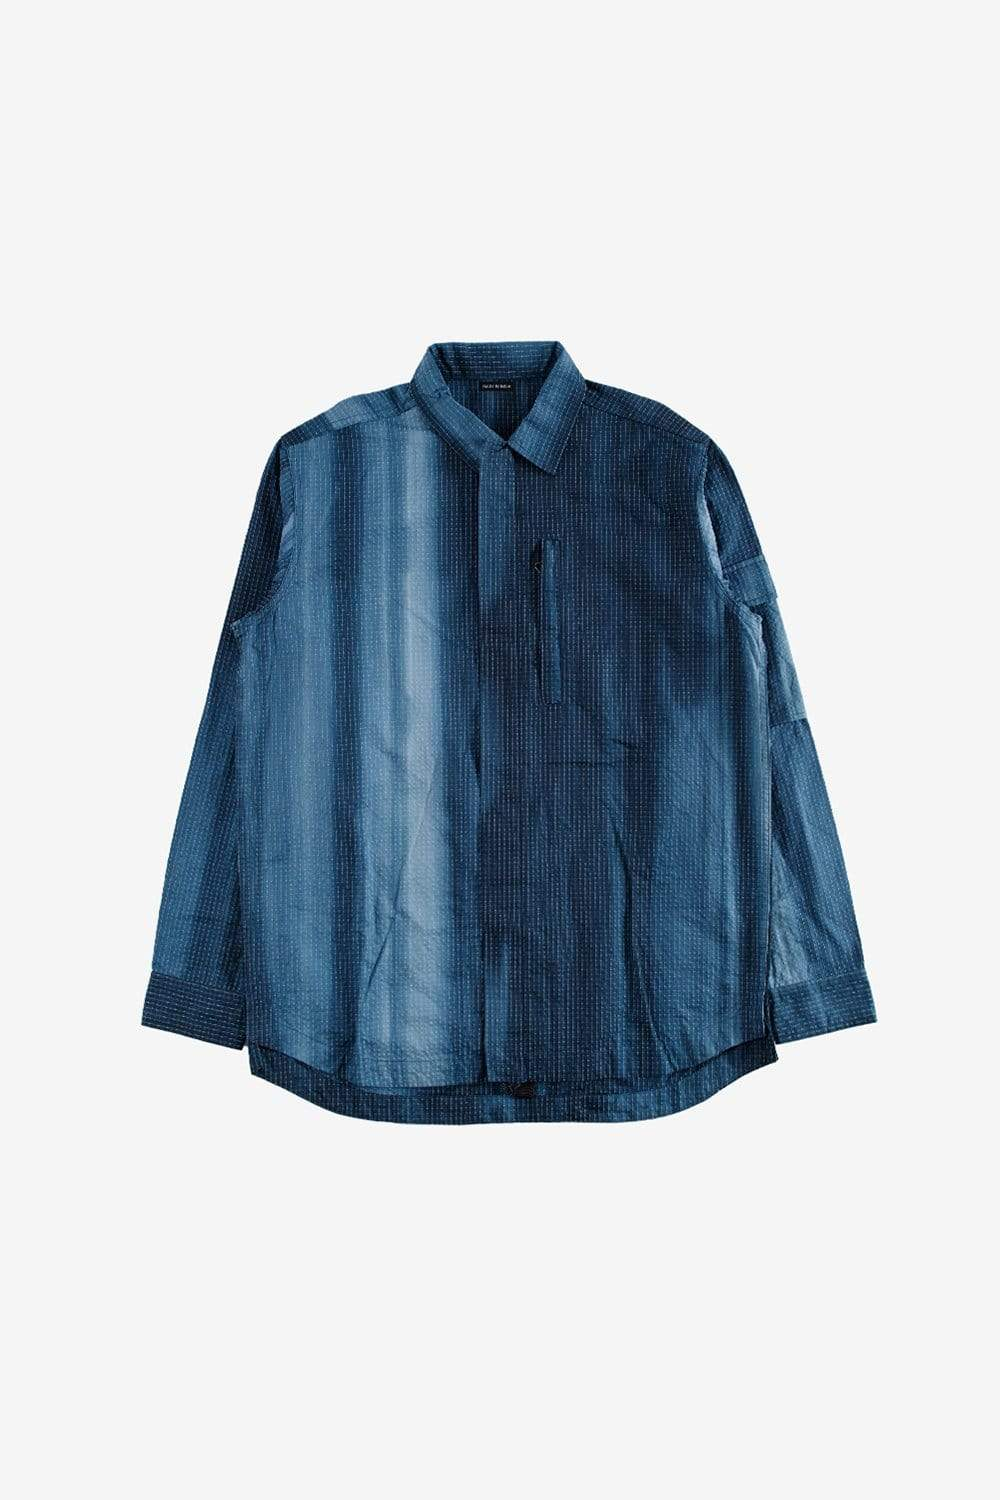 maharishi Apparel Day Travel Shirt